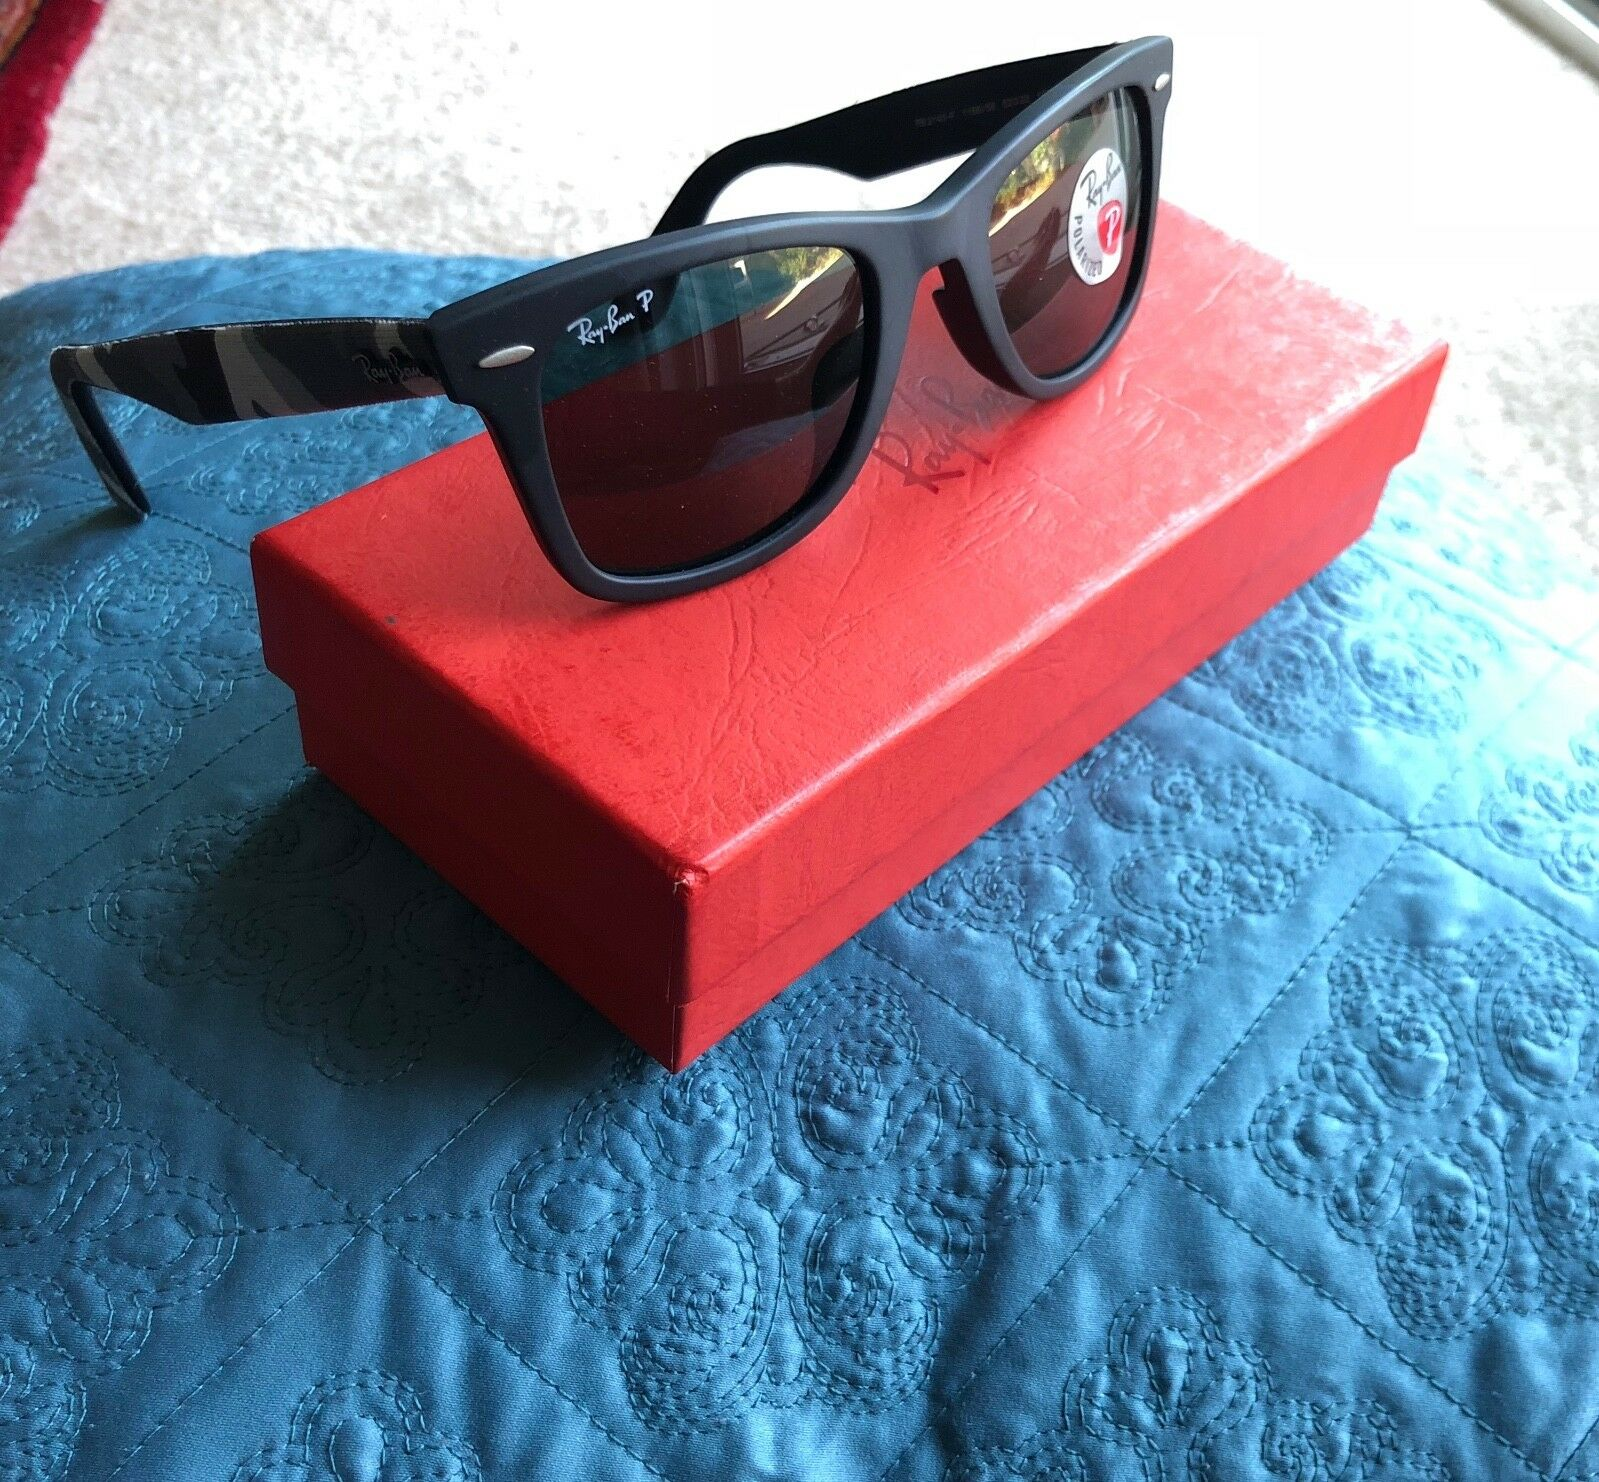 8cd35bba34ae6 EAN 8053672174618 product image for Ray-ban Polarized Wayfarer Rb2140f  115658 52mm Black   Gray ...